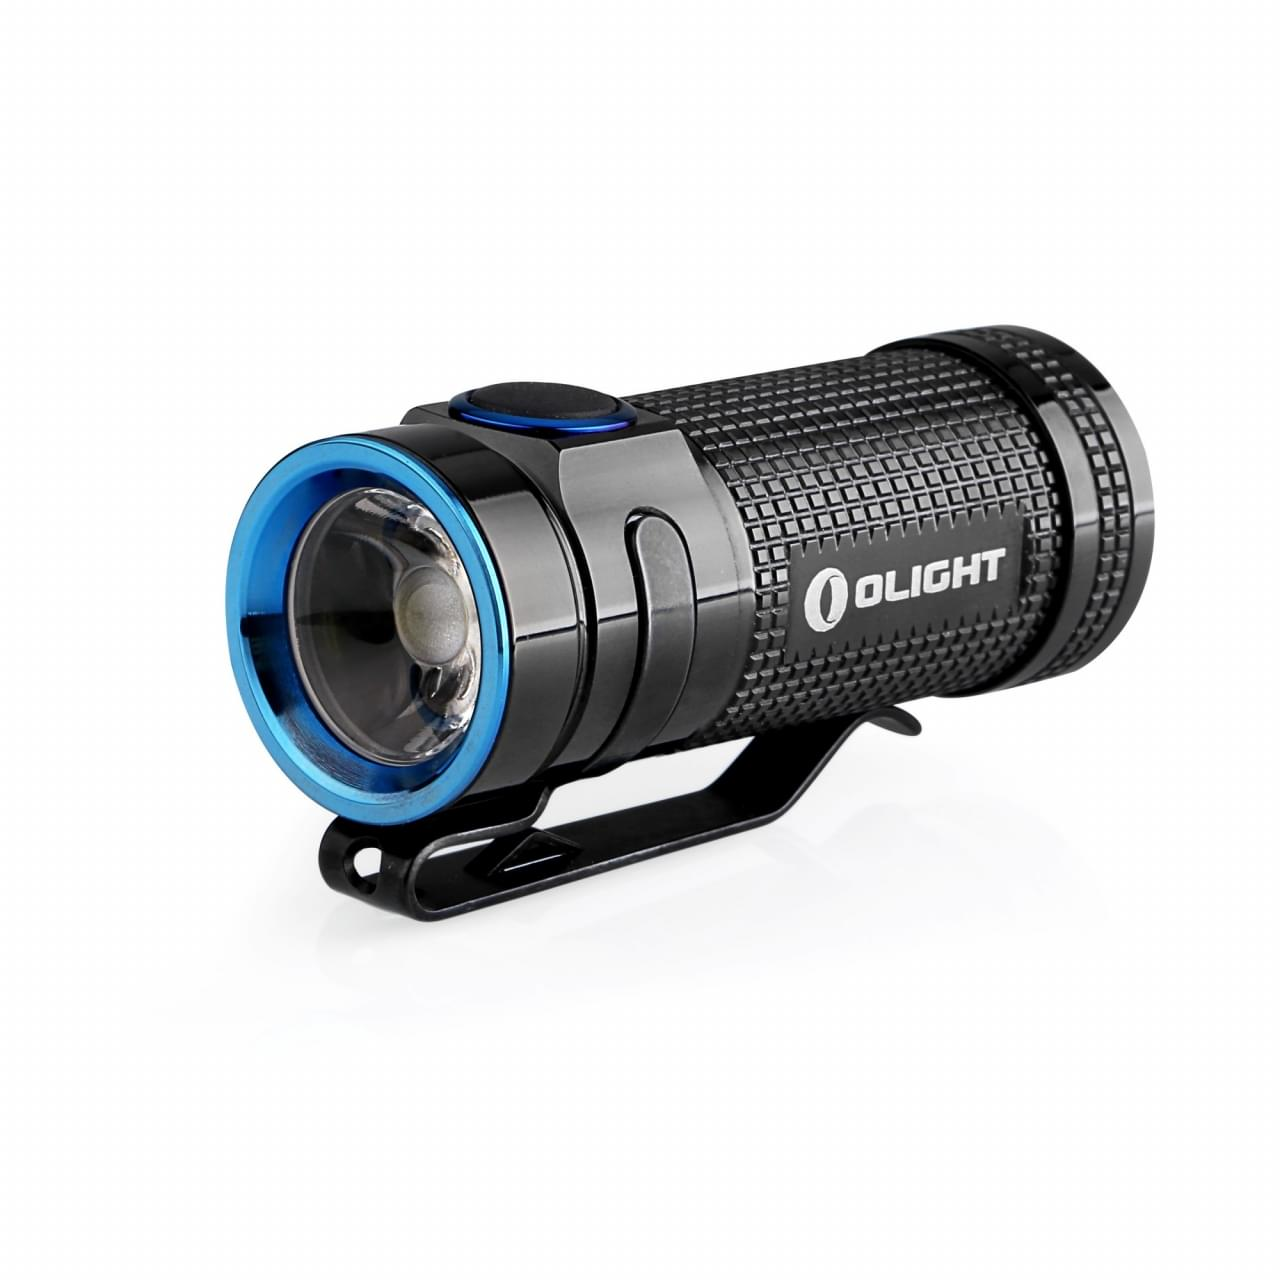 Olight SMINI Baton CU - Black Onyx Limited edition